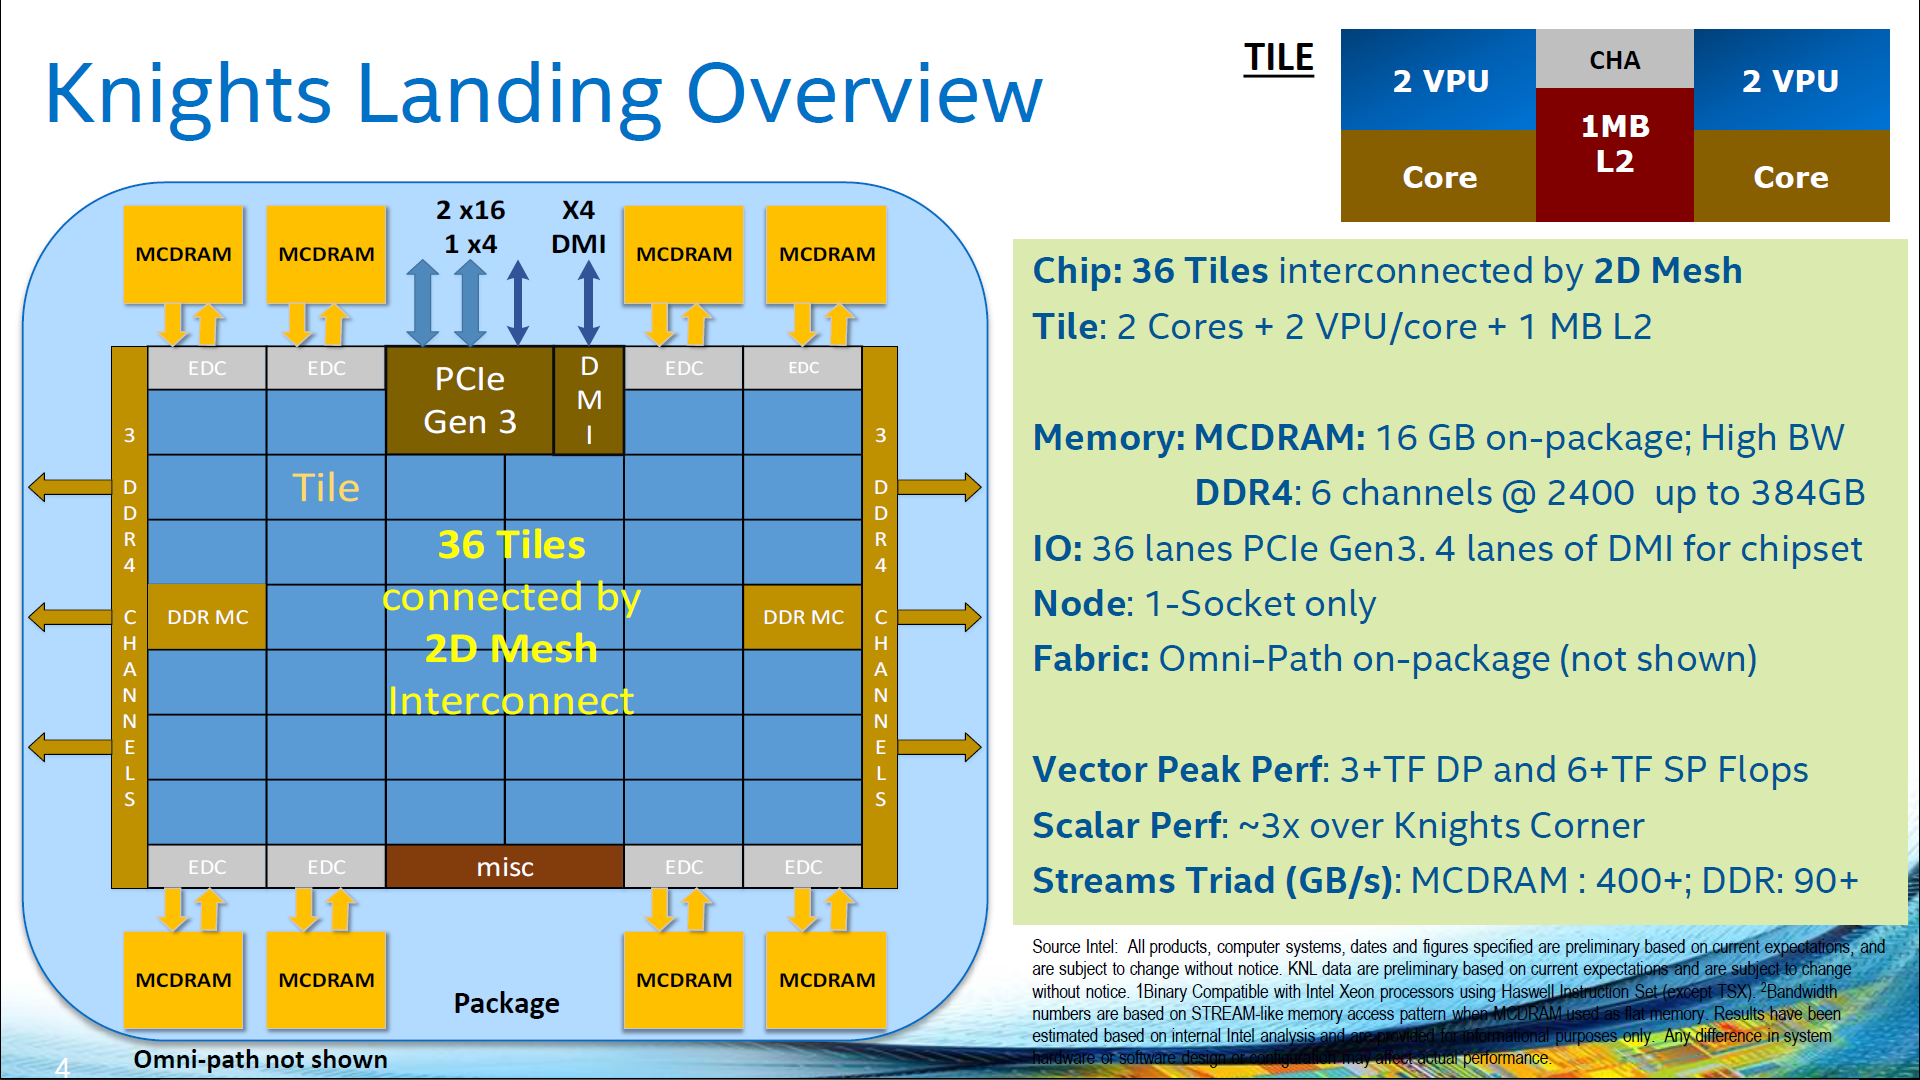 Intel 2nd Generation Xeon Phi family is based on Knights Landing processor.